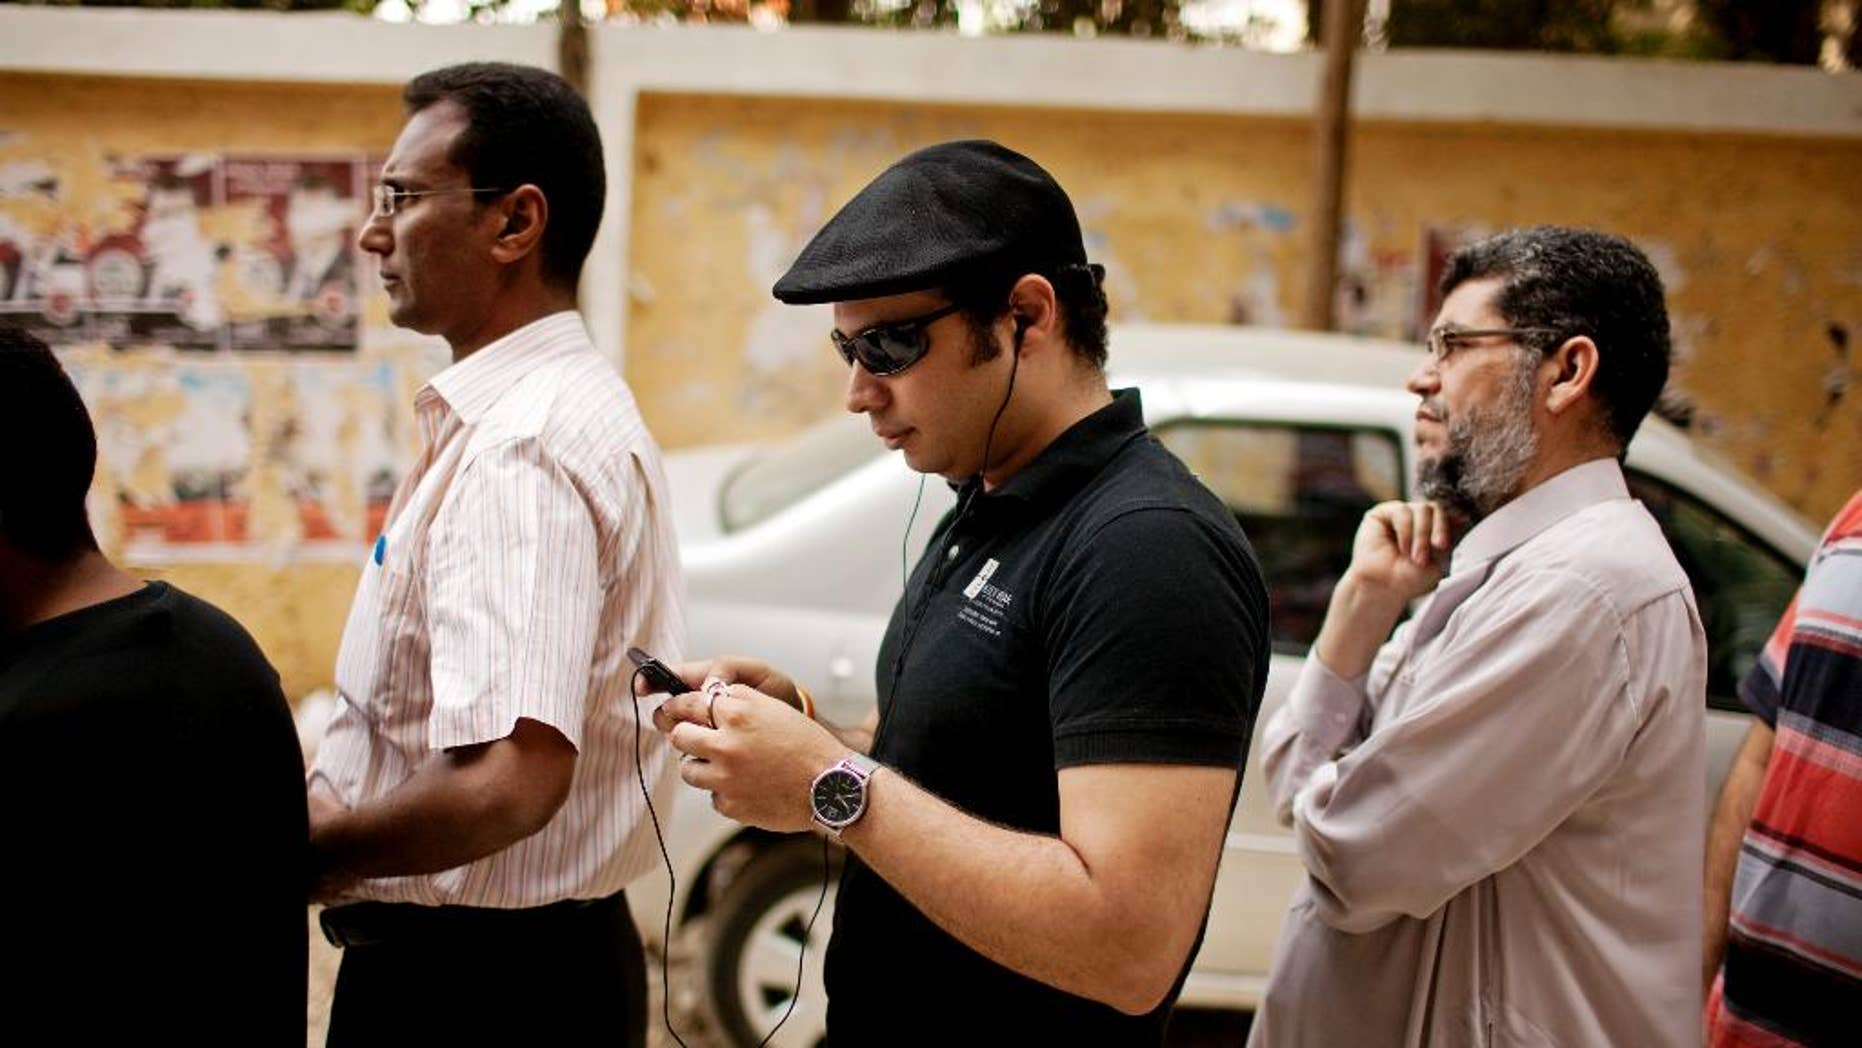 FILE -- In this May 23, 2012 file photo, Ahmed Maher, a co-founder of the April 6 Revolutionary Movement, waits in line to vote in presidential elections after 16 months of interim rule by the Supreme Council of Armed Forces, at a polling center in Cairo, Egypt. Maher, a leading Egyptian activist behind the 2011 uprising that toppled Hosni Mubarak has been released from prison after serving a three-year sentence for violating a ban on unauthorized protests. A lawyer for Maher, Tarek al-Awadi, said Maher will be under surveillance for the next three years as part of his sentence. (AP Photo/Pete Muller, File)